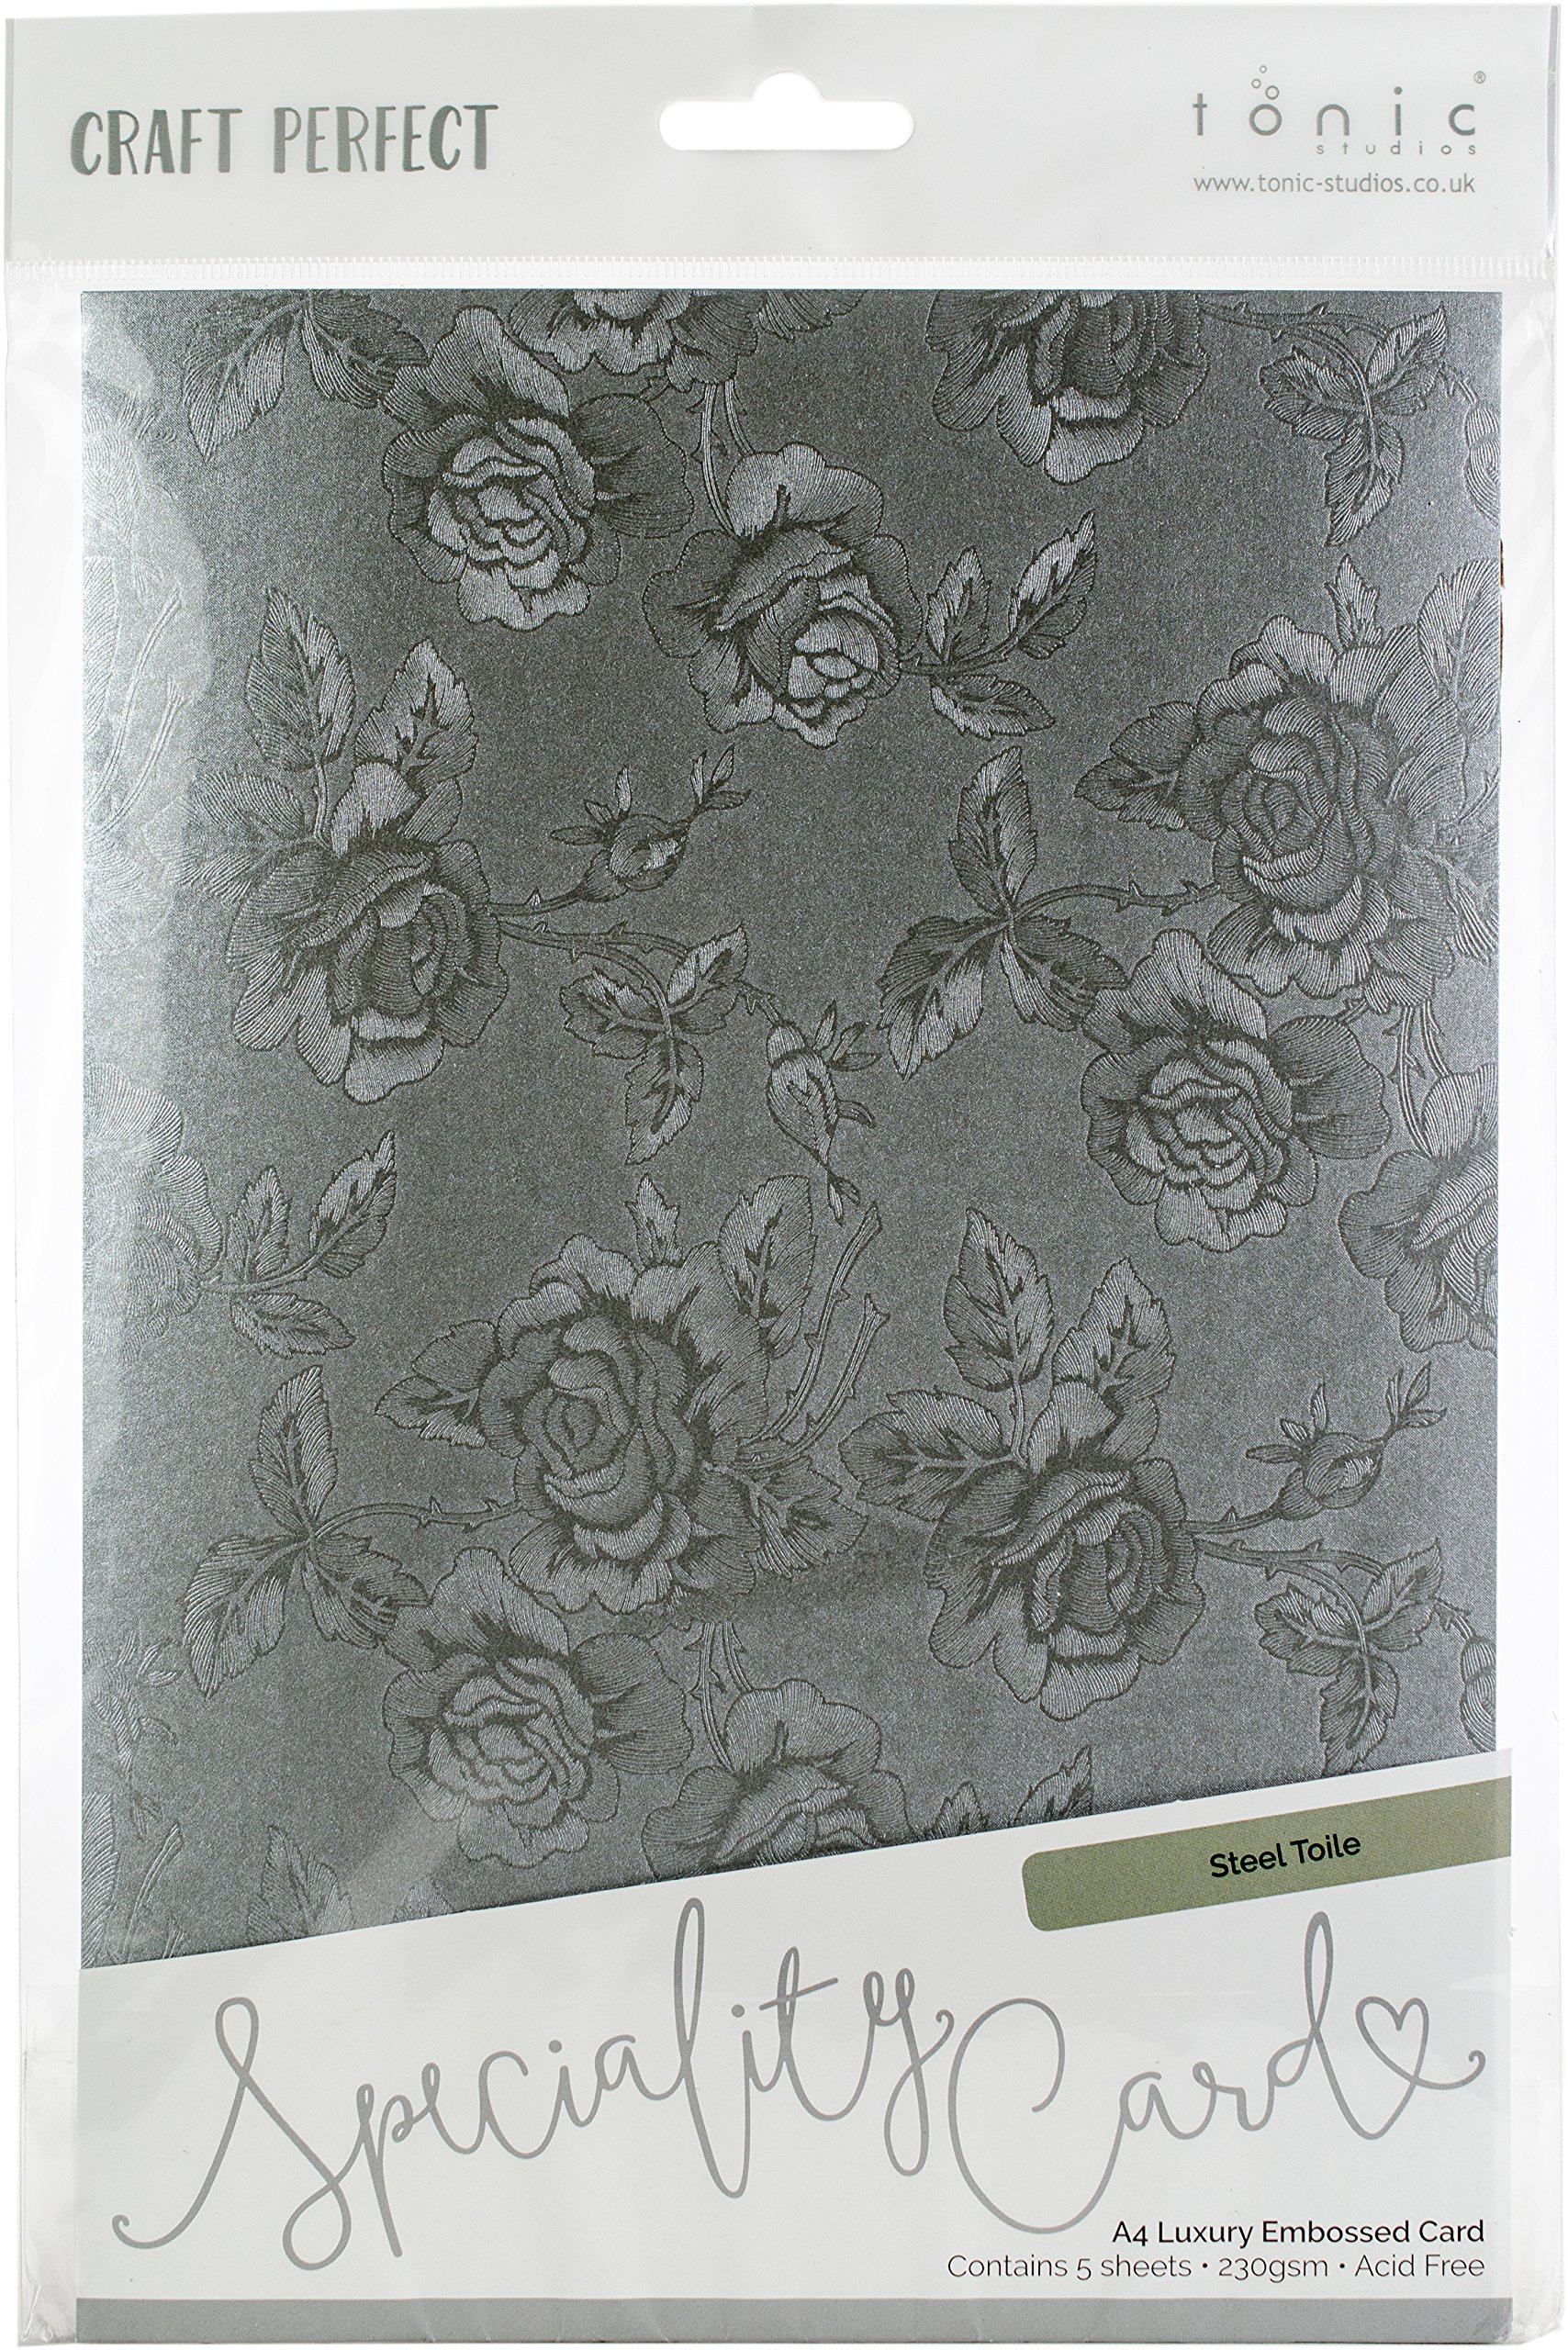 Tonic Studios 9820E Steel Toile Craft Perfect Luxury Embossed A4 Cardstock (5 Per Pack) Multicolor